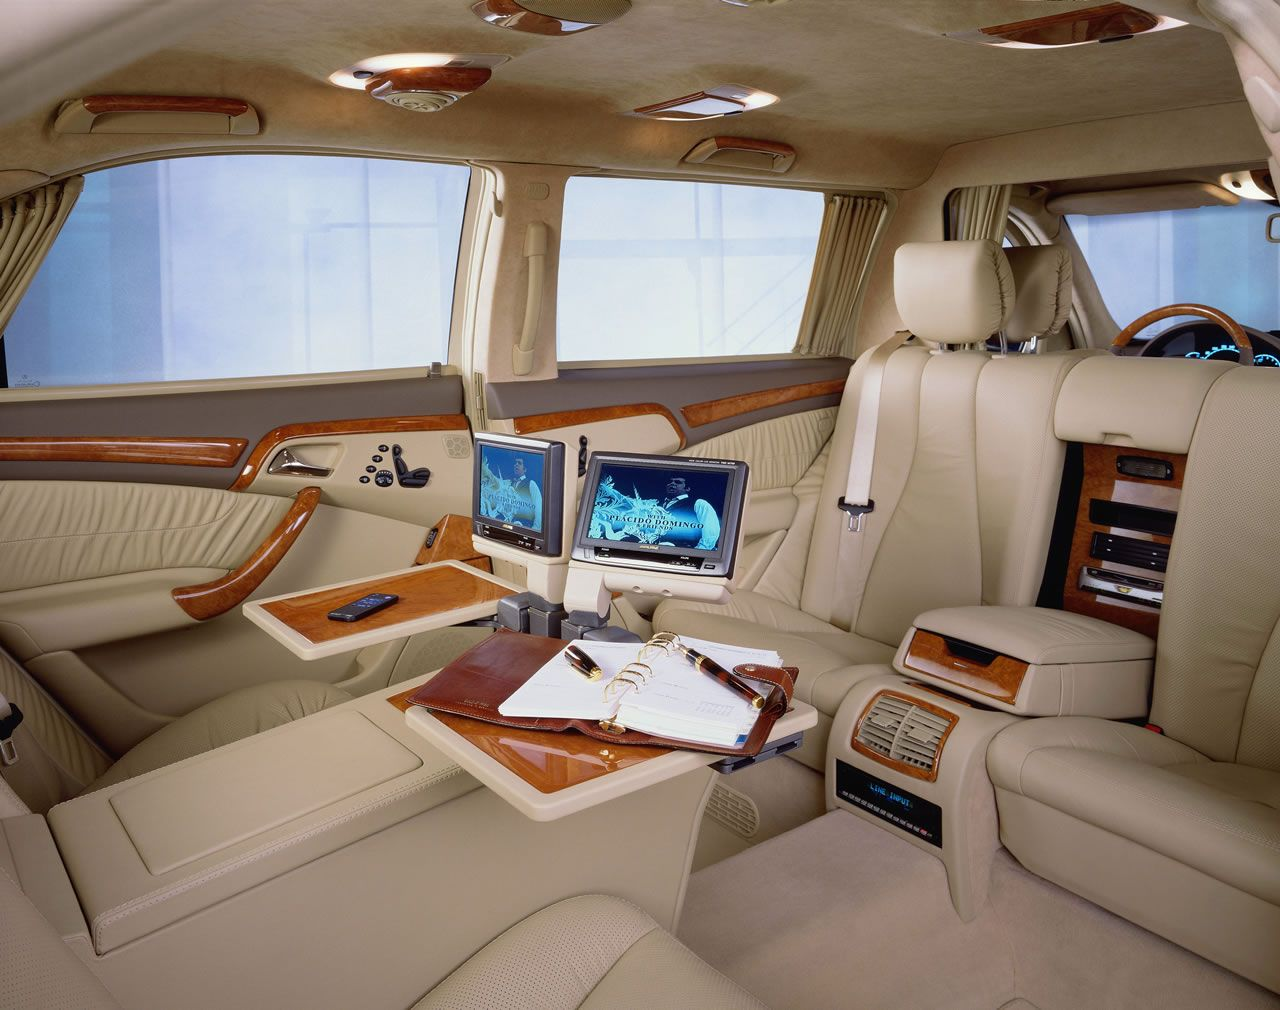 Luxury Limo Interior The 220 Model Series S Class Vv220